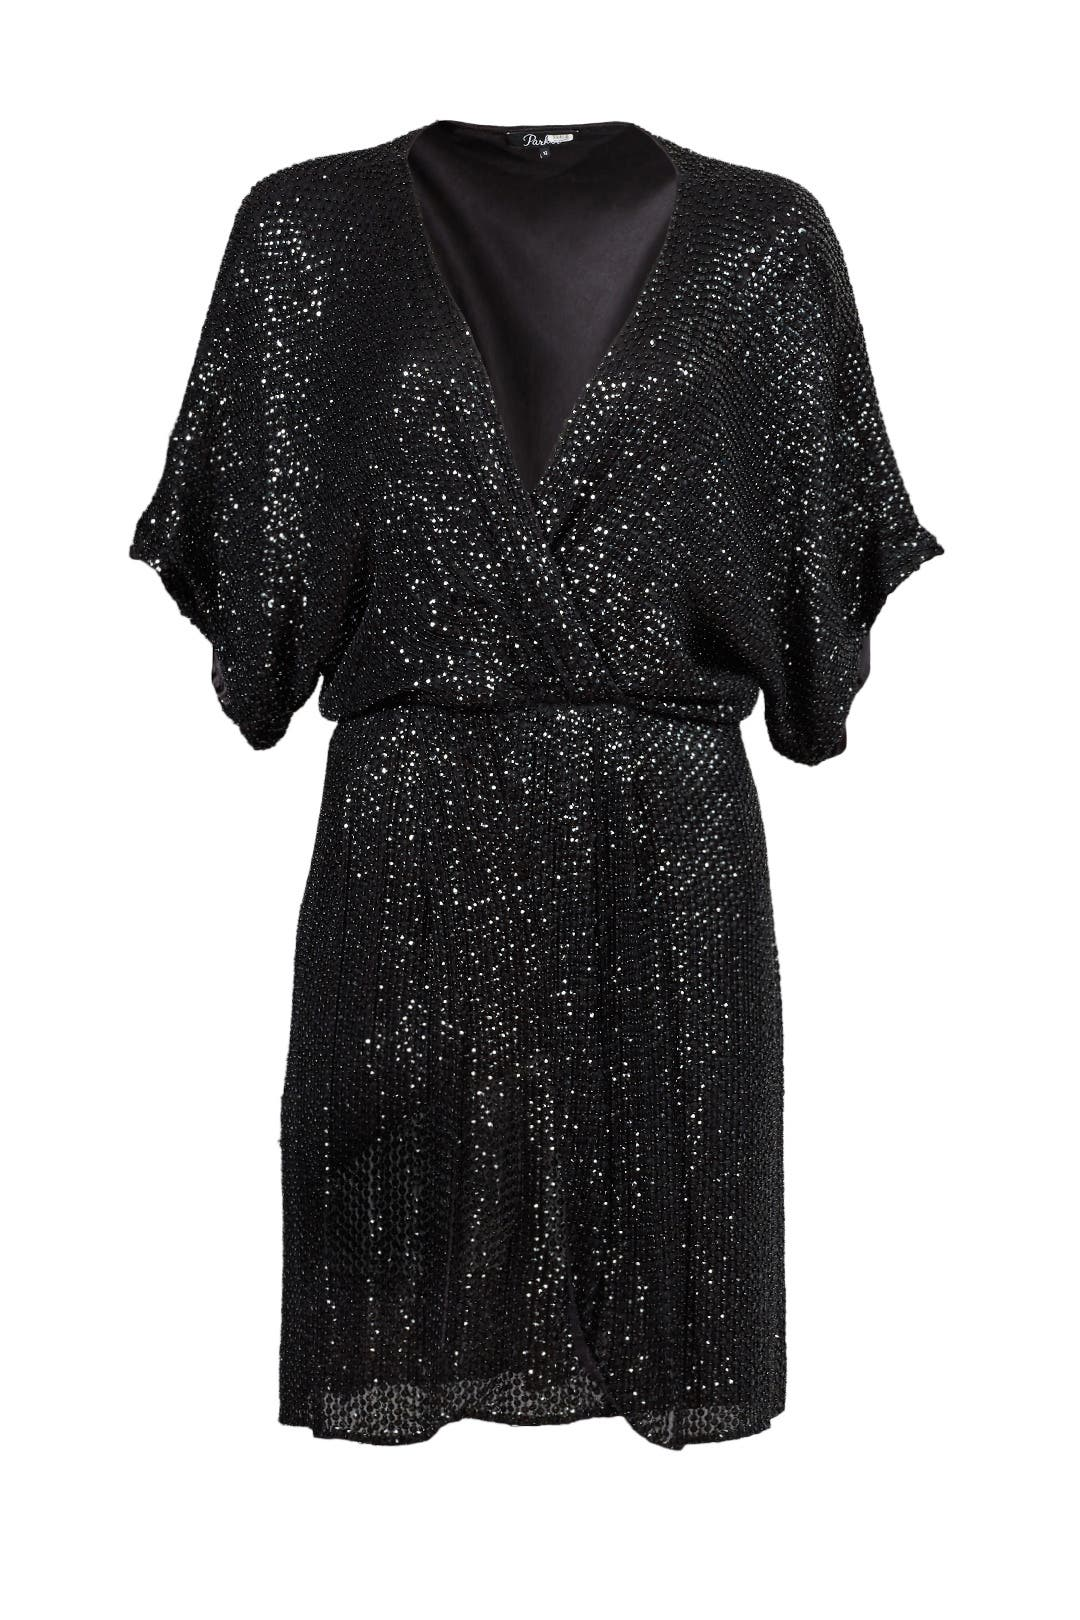 https://www.renttherunway.com/shop/designers/parker/hanging_beads_dress?SSAID=758422&utm_campaign=SAS&utm_medium=affiliate&utm_source=shareasale.com&campaign=SAS